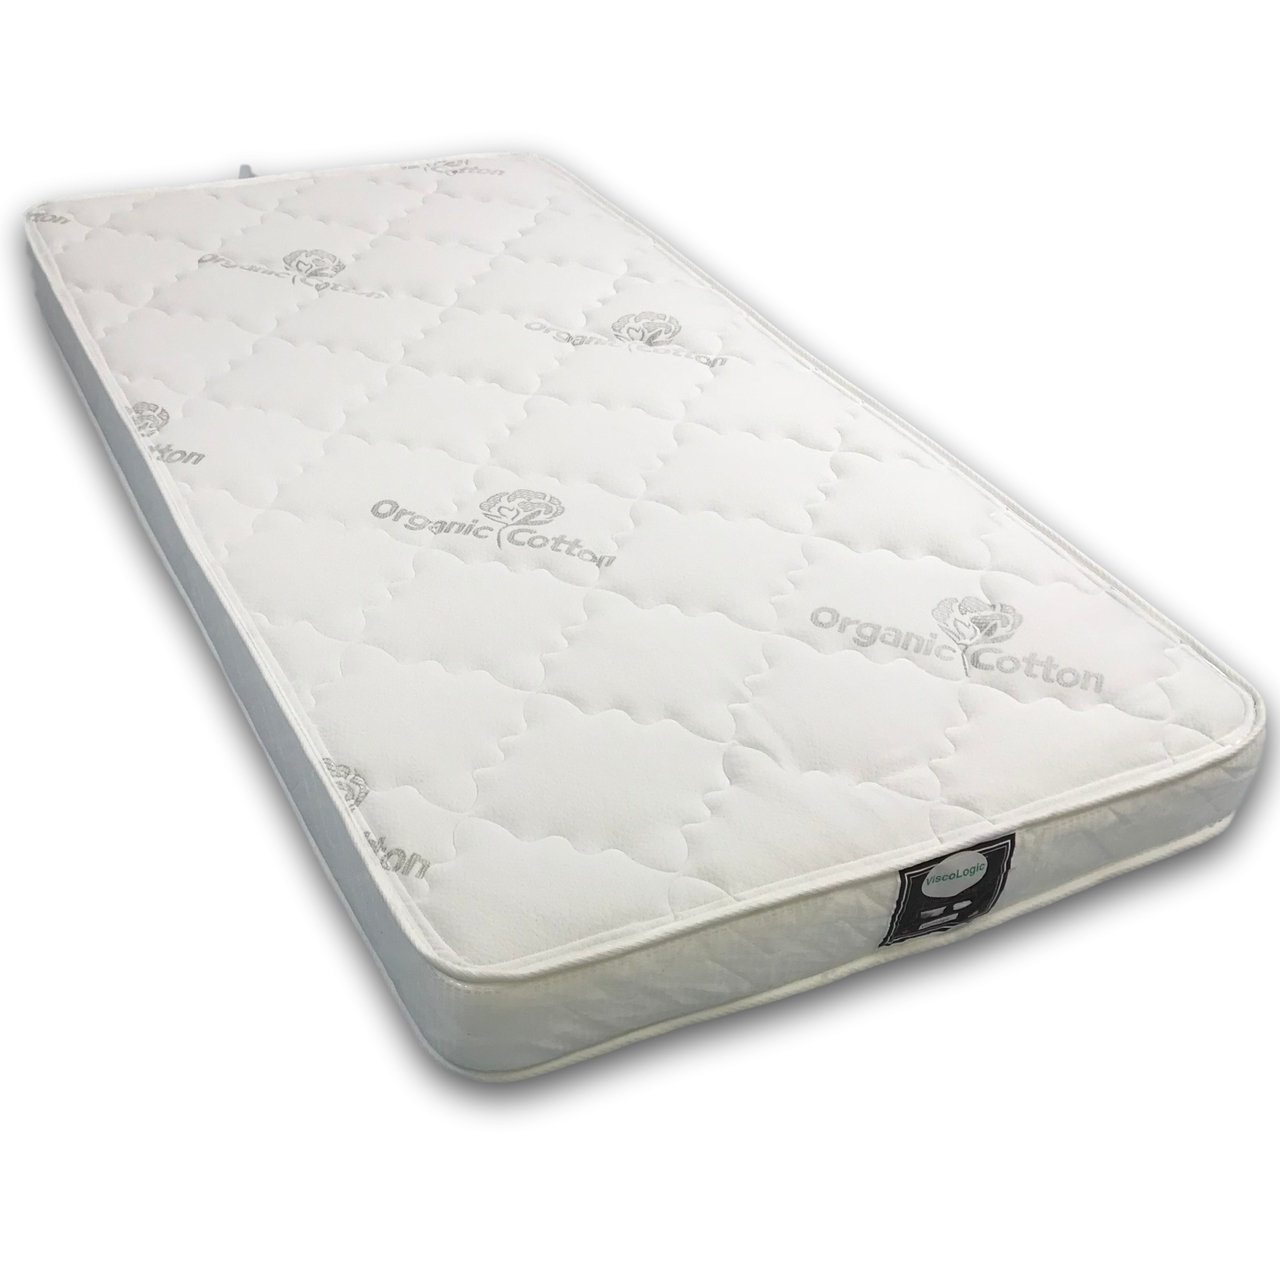 Twin Mattress Vs Single: ViscoLogic OPTIMA Comfort Luxurious Organic Cotton Quilted